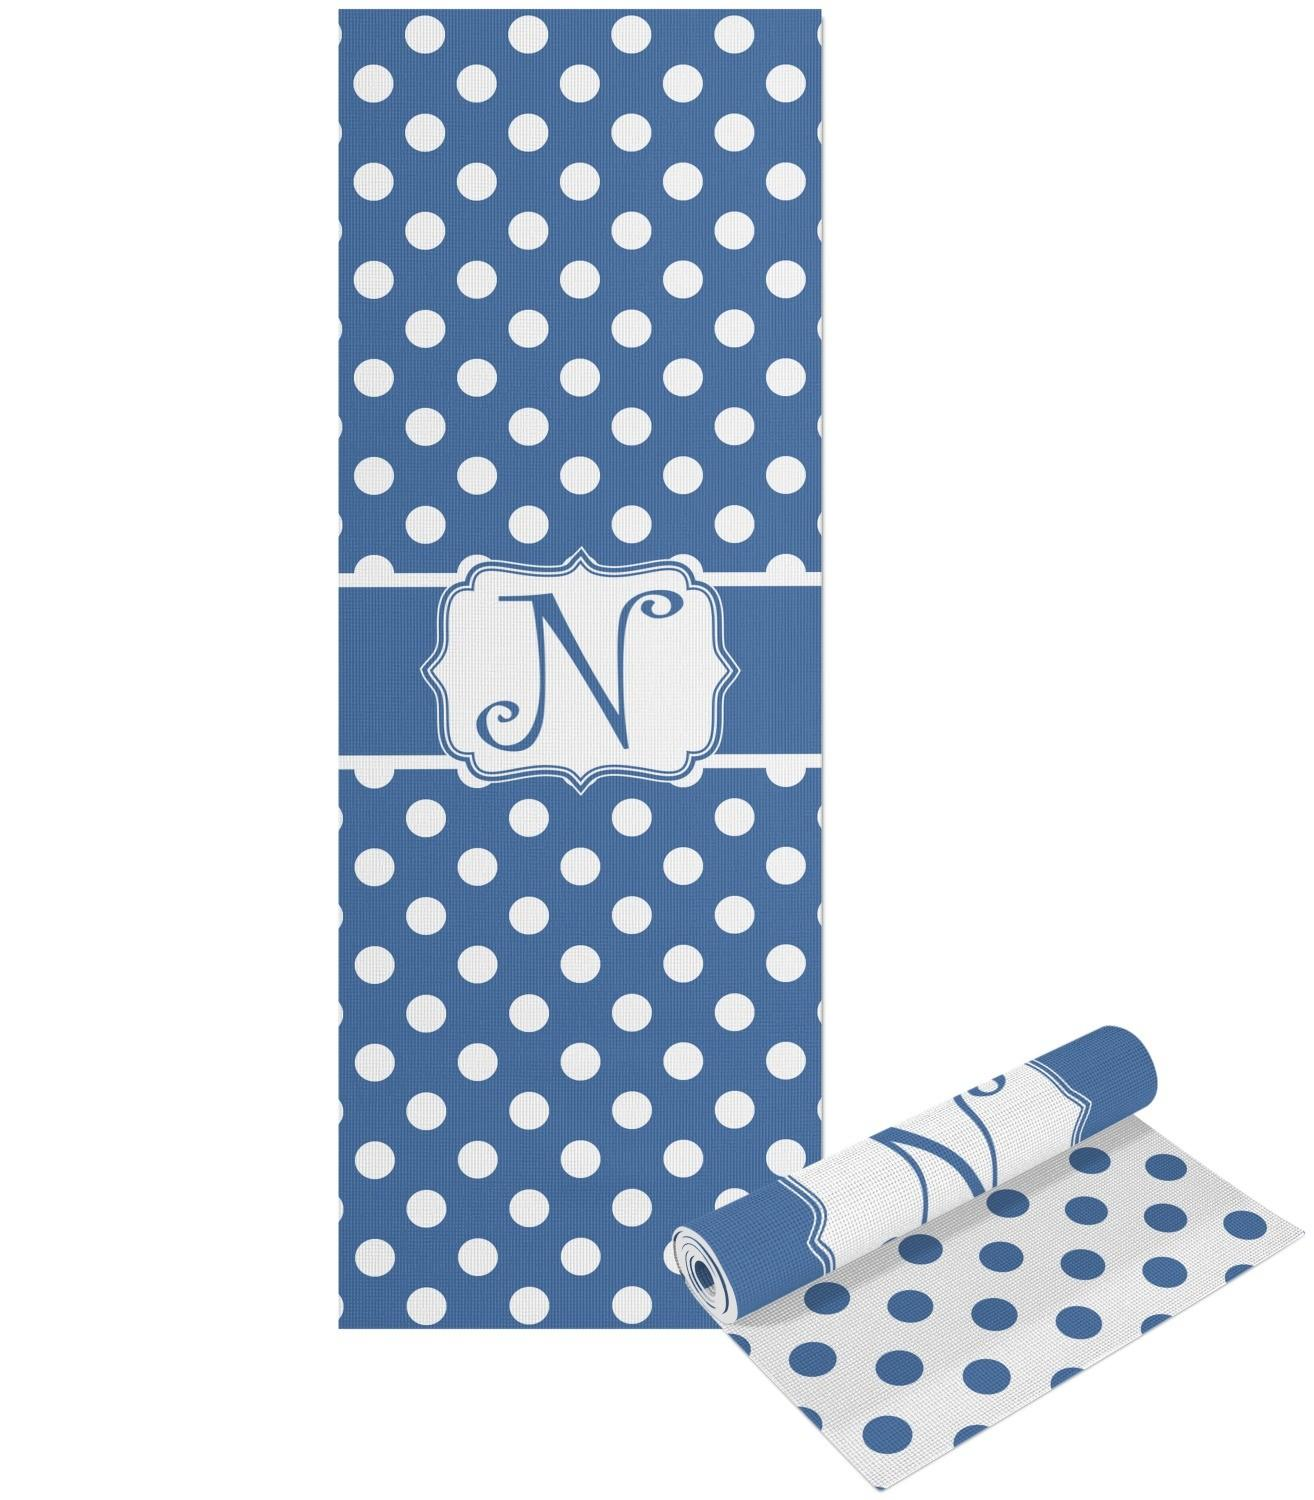 Polka Dots Yoga Mat Printable Front Back